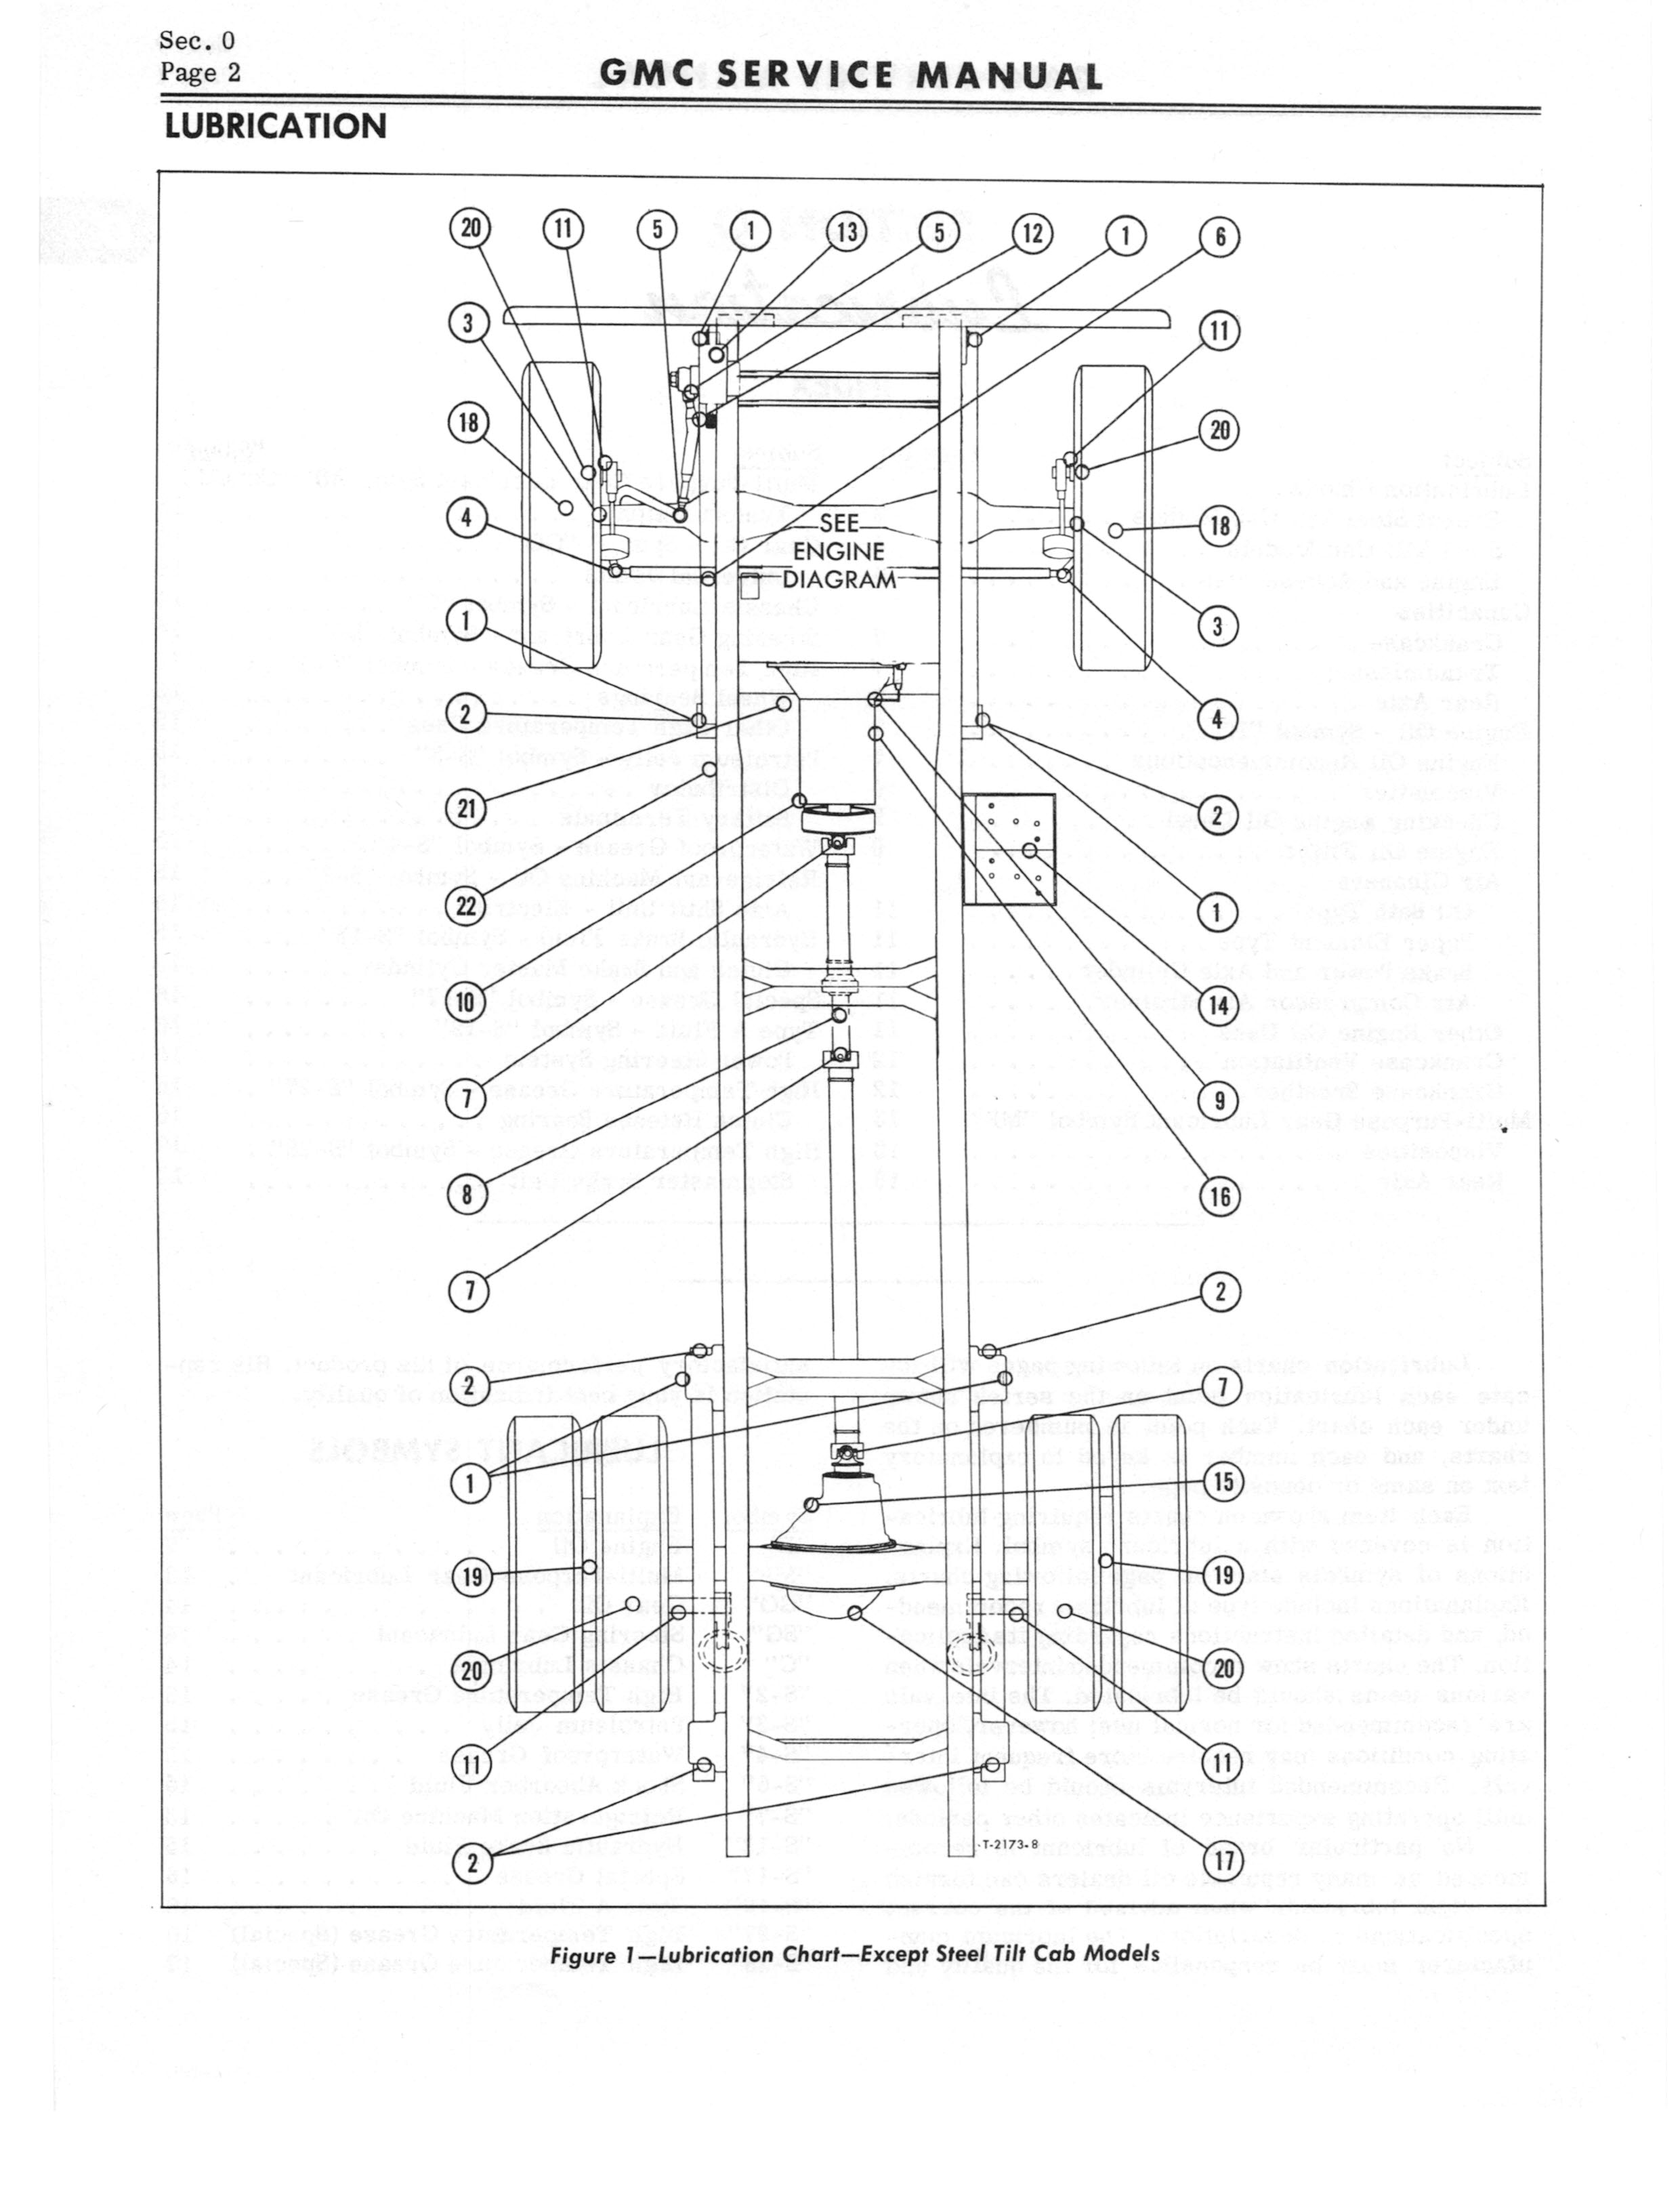 1966 GMC Service Manual Series 4000-6500 page 8 of 506